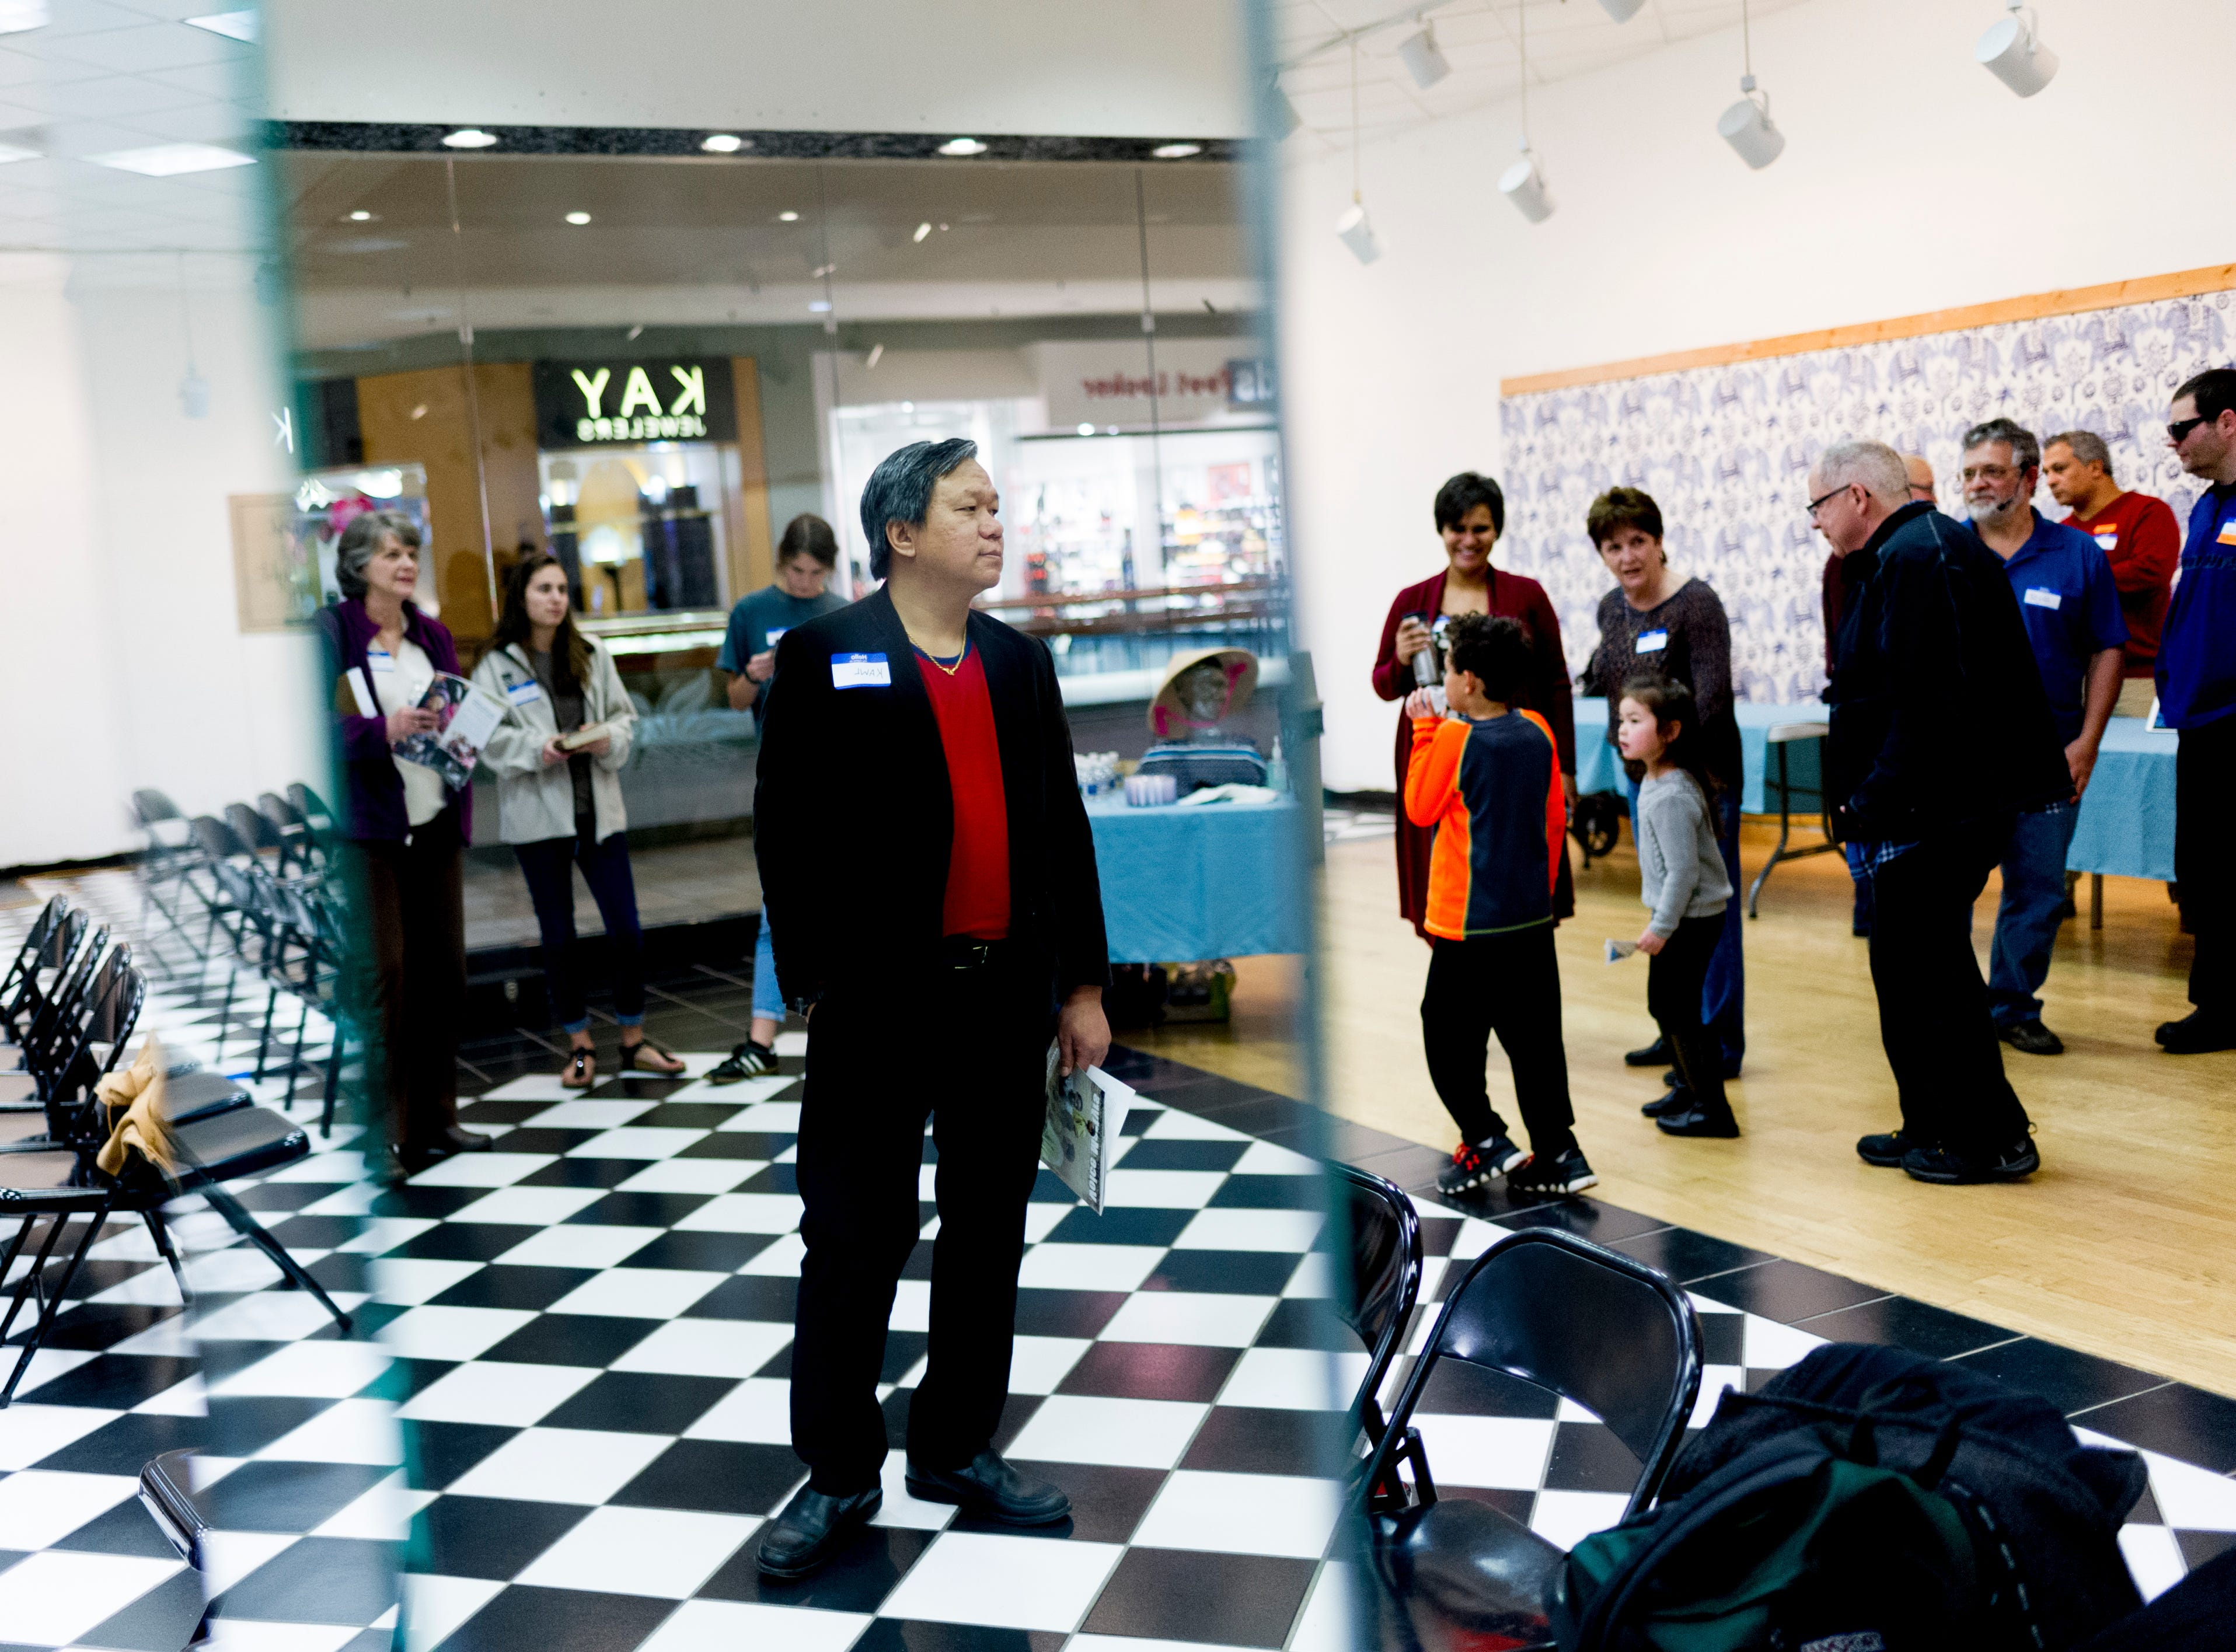 Attendees arrive during the monthly Gathering of Nations worship service at East Town Mall in Knoxville, Tennessee on Friday, February 9, 2018. Christians from a variety of nations meet once a month for a service where they pray, sing and worhsip in their respective native tongues.